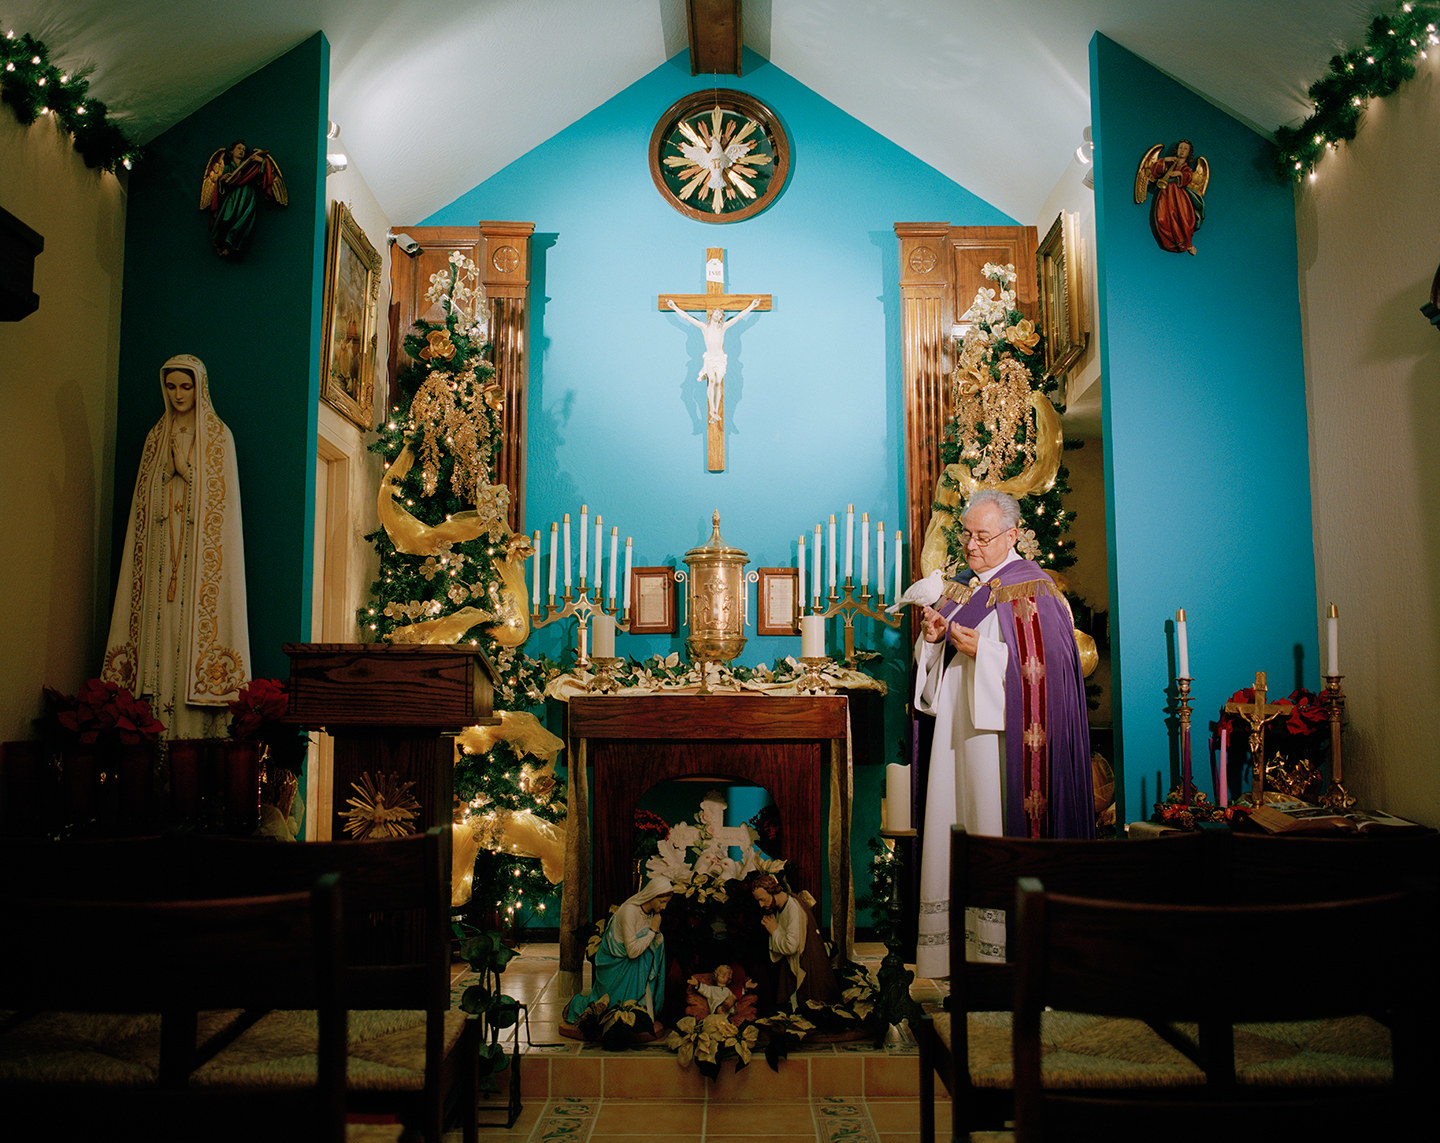 A man dressed as a priest in a small shrine inside a home